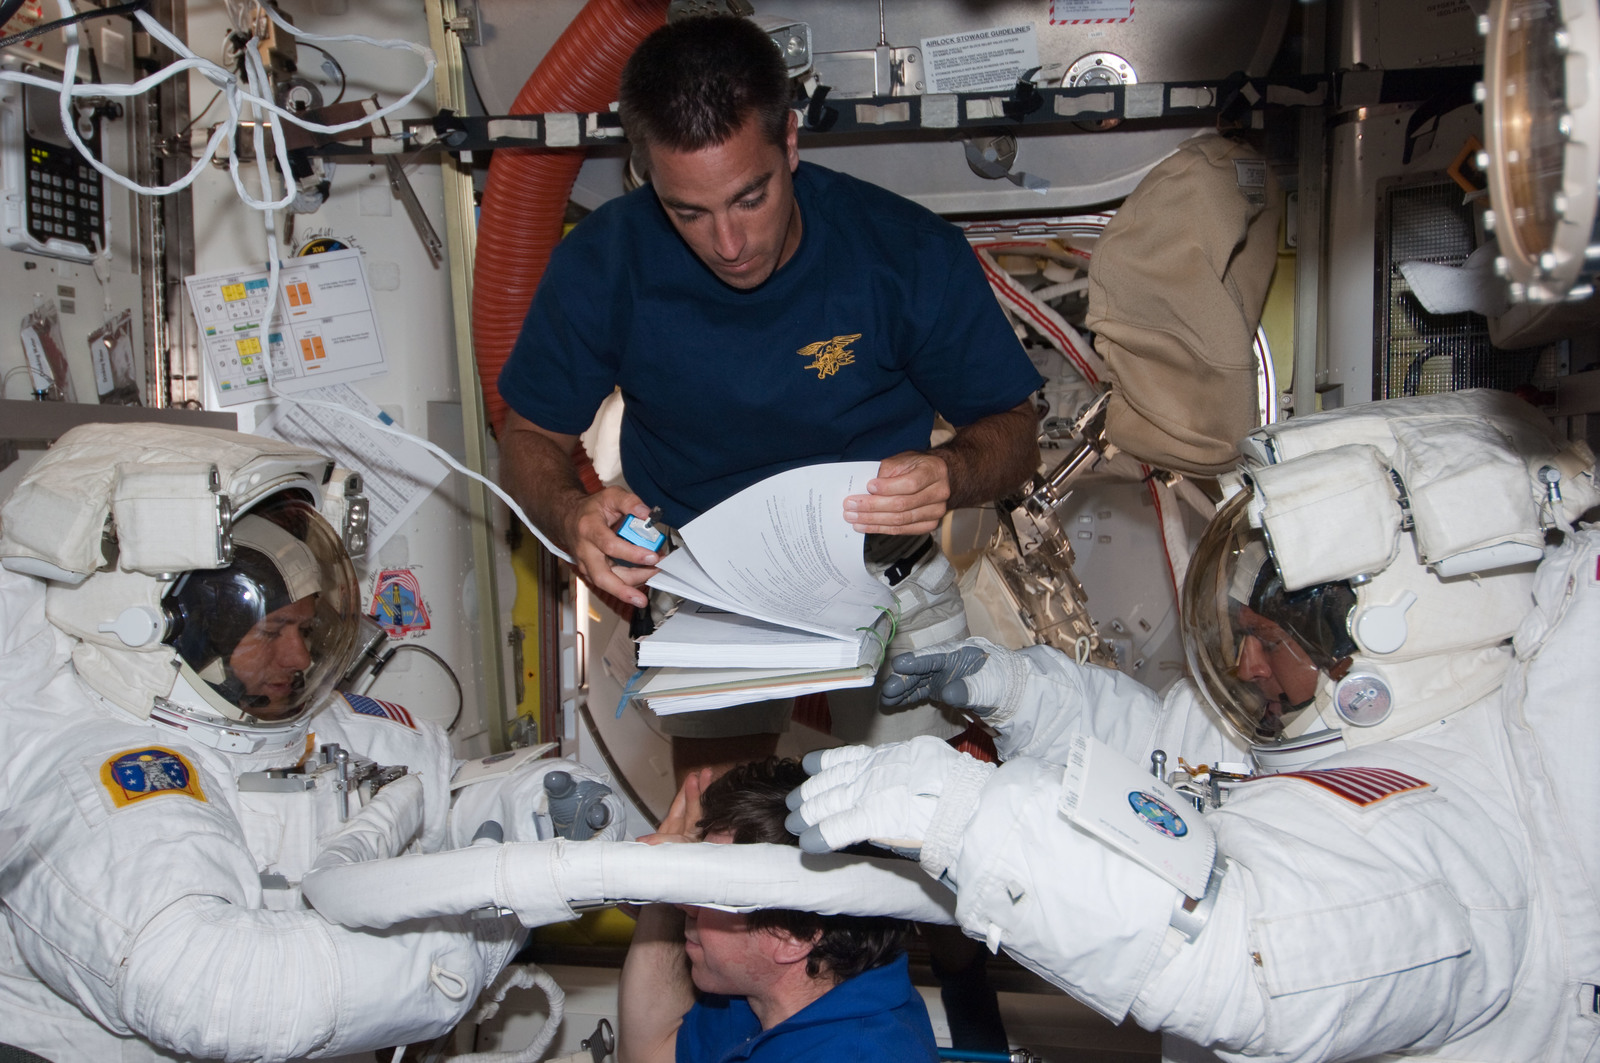 S127E007026 - STS-127 - Marshburn and Wolf in the A/L during STS-127 / Expedition 20 Joint Operations